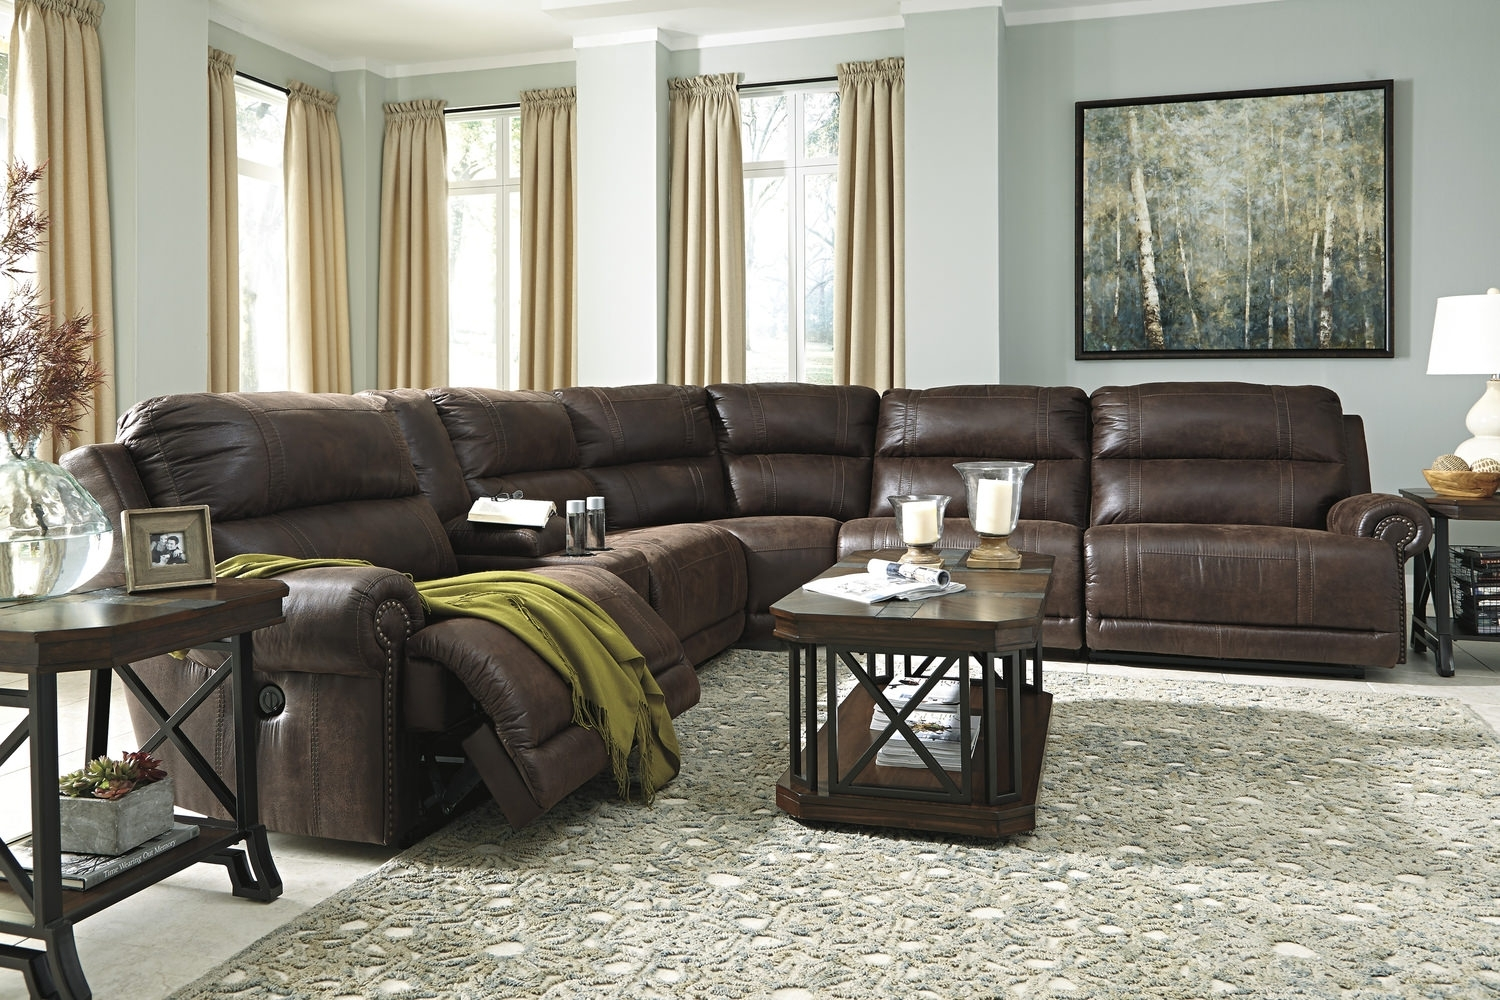 Placer 6 Piece Power Reclining Modular Sectional | Dock86 Throughout Blaine 3 Piece Sectionals (Image 19 of 25)